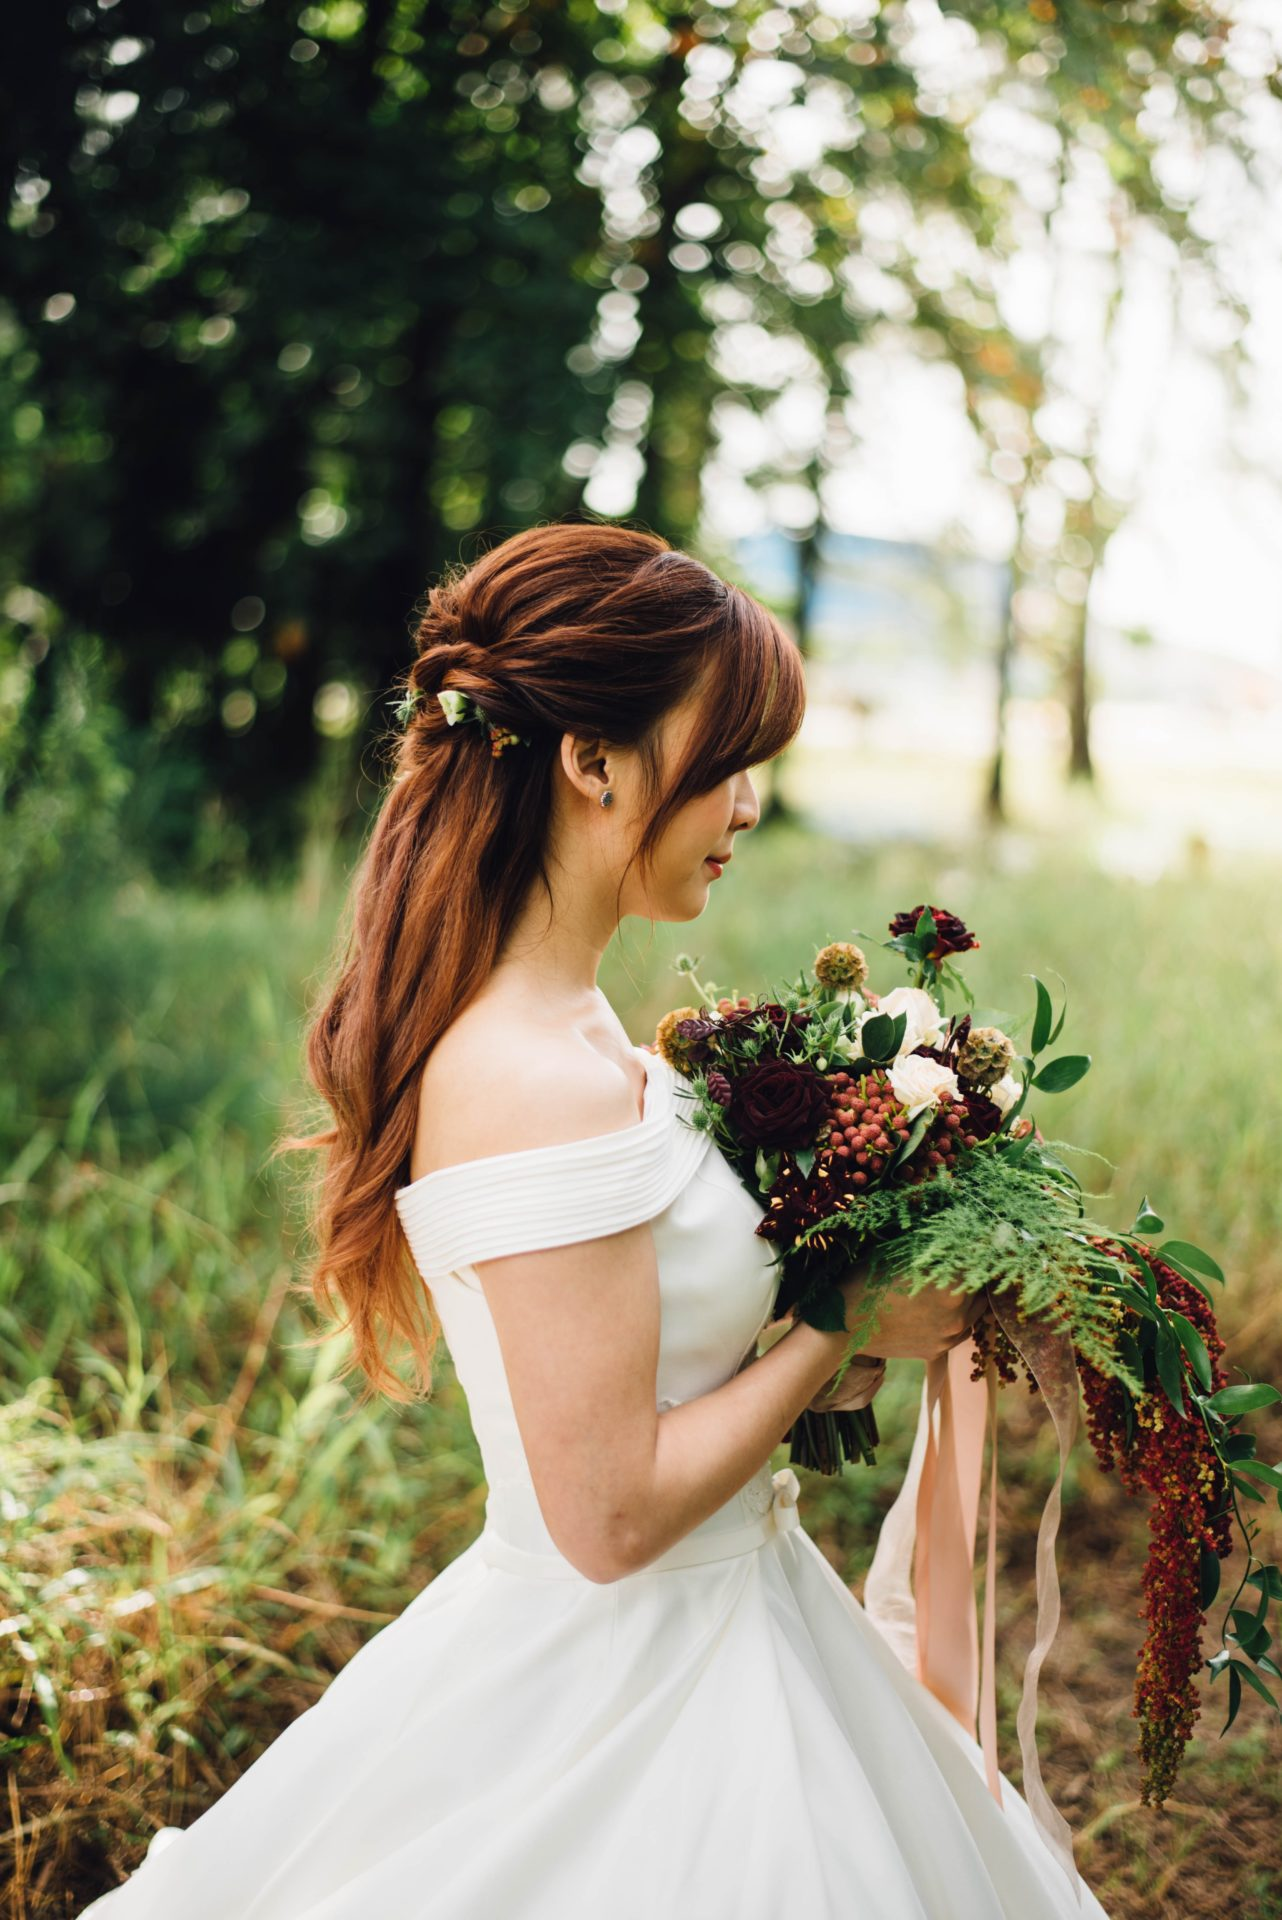 The 3 Fundamentals For Dream Wedding Locations